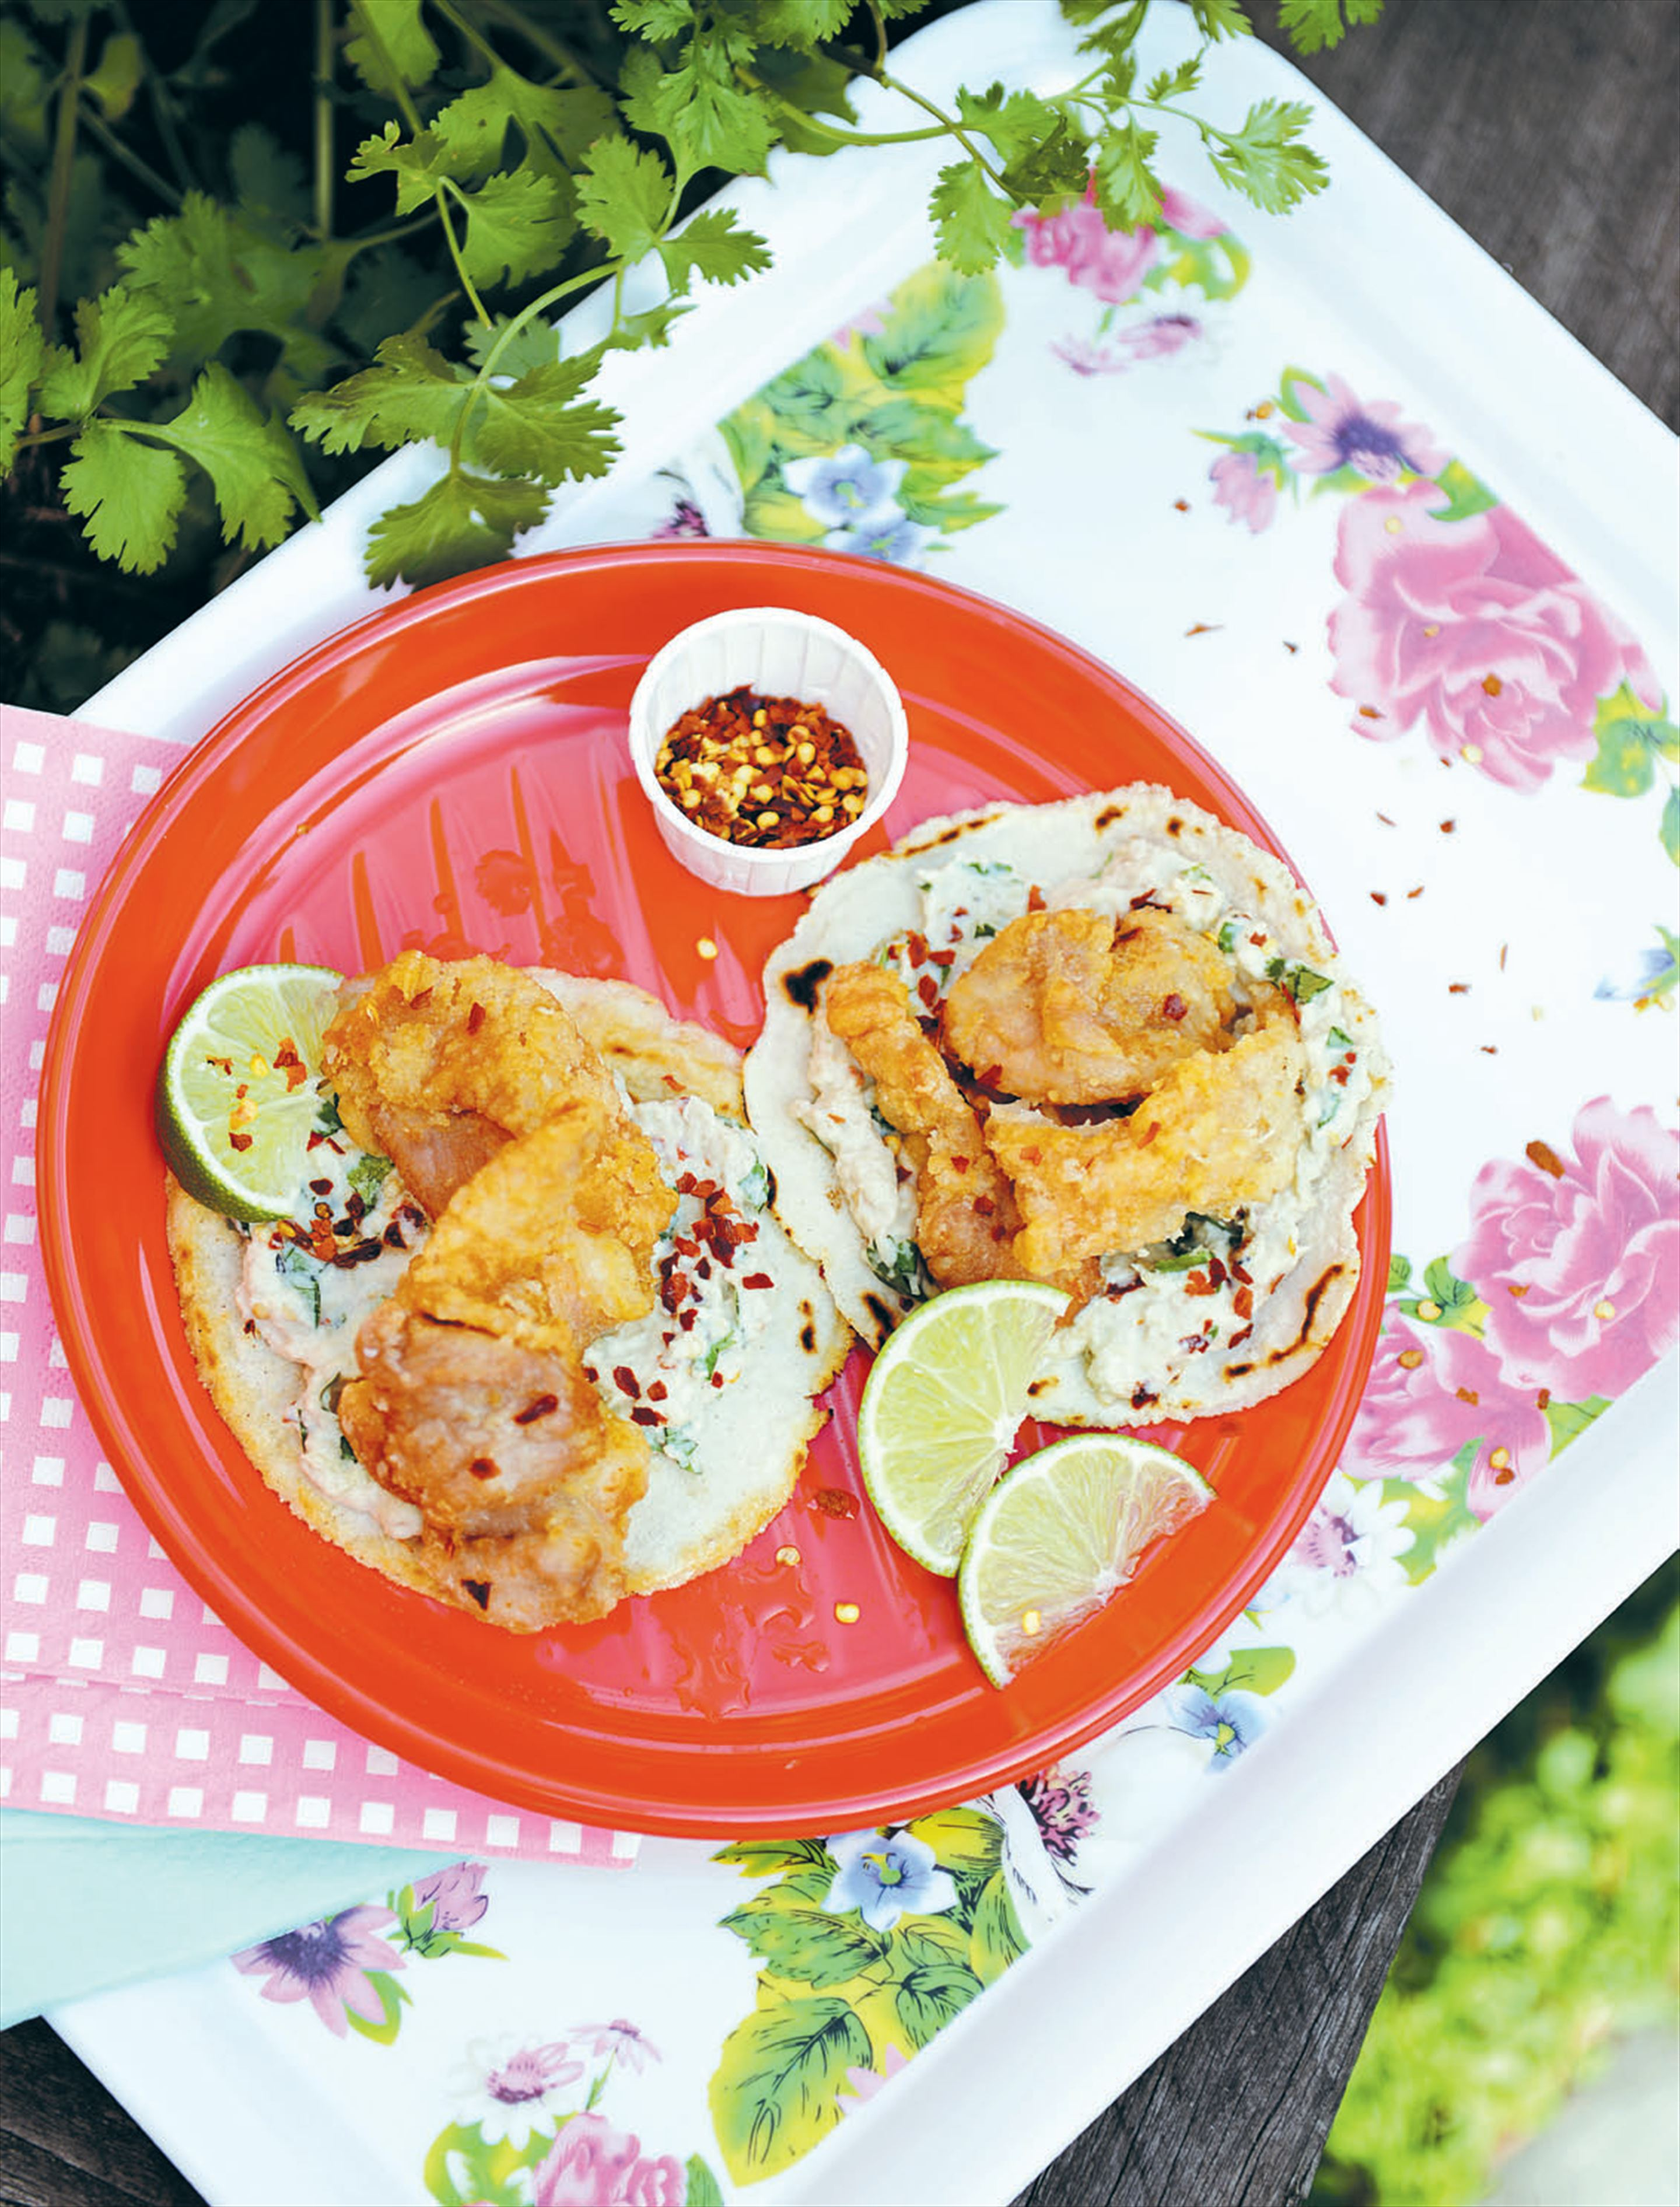 Fried chicken tacos with spiced eggplant